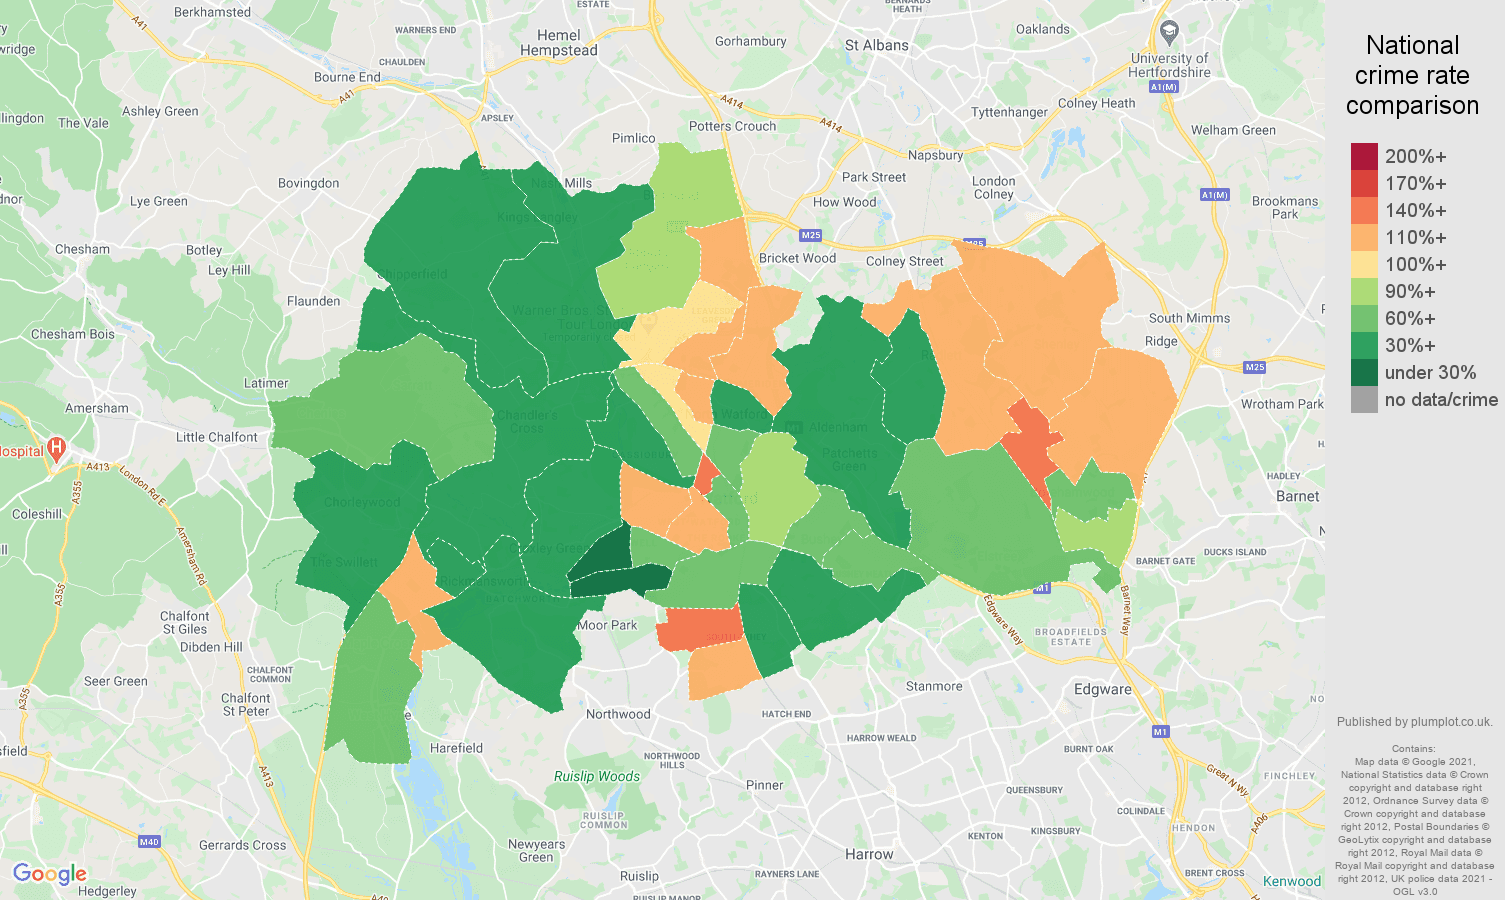 Watford violent crime rate comparison map